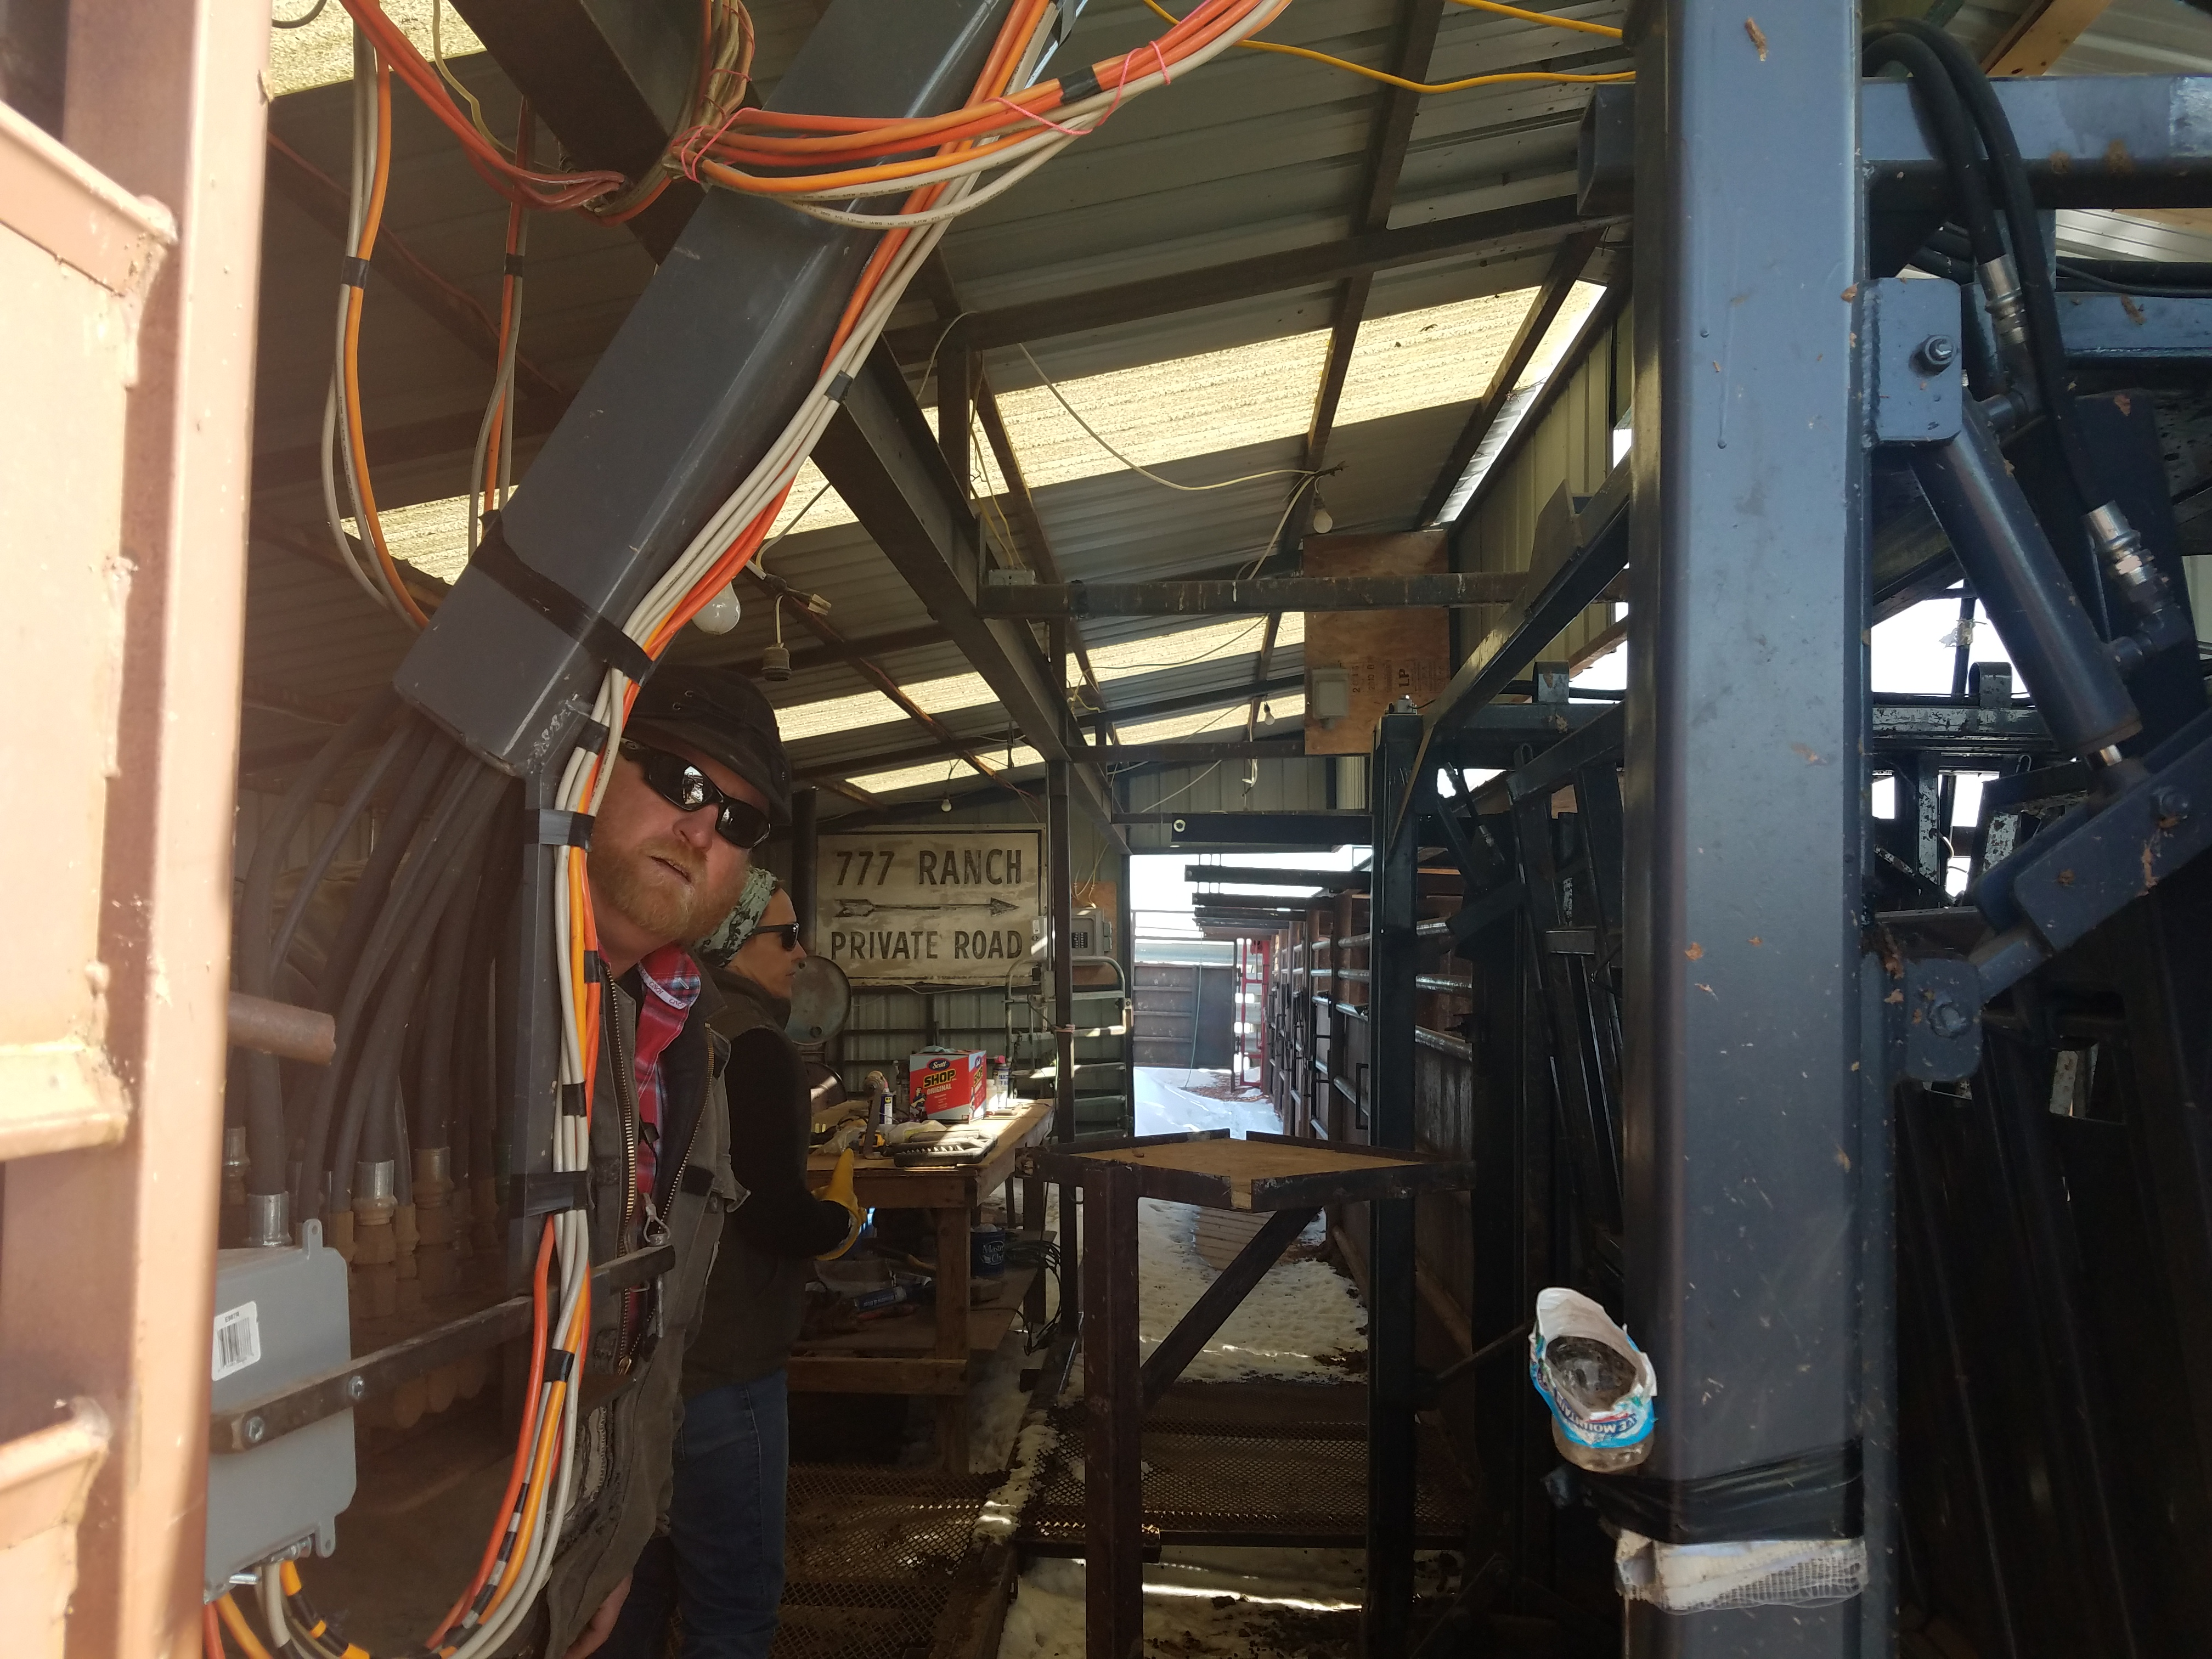 The hydraulic controls and the chute the bison go down to get their shots and tests